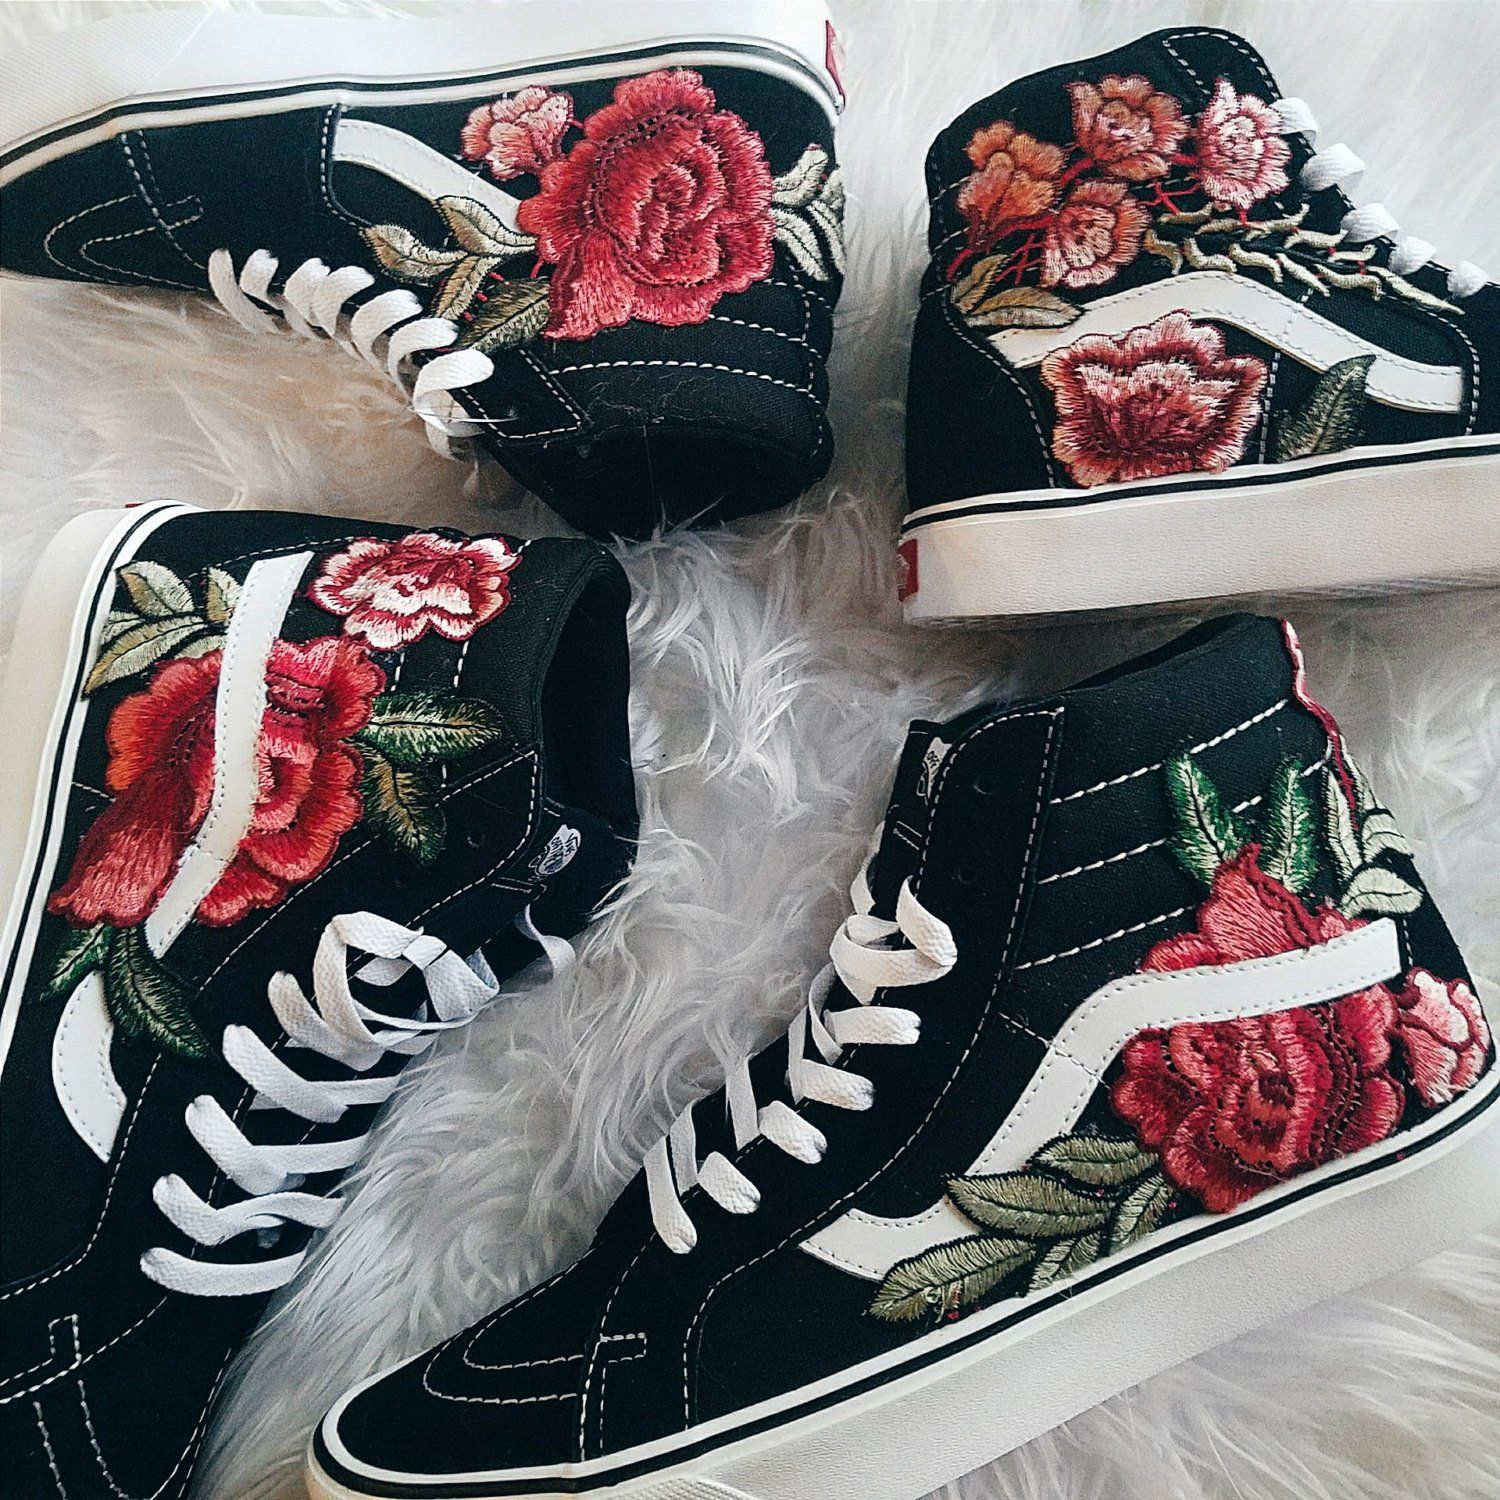 rose embroided vans shoes